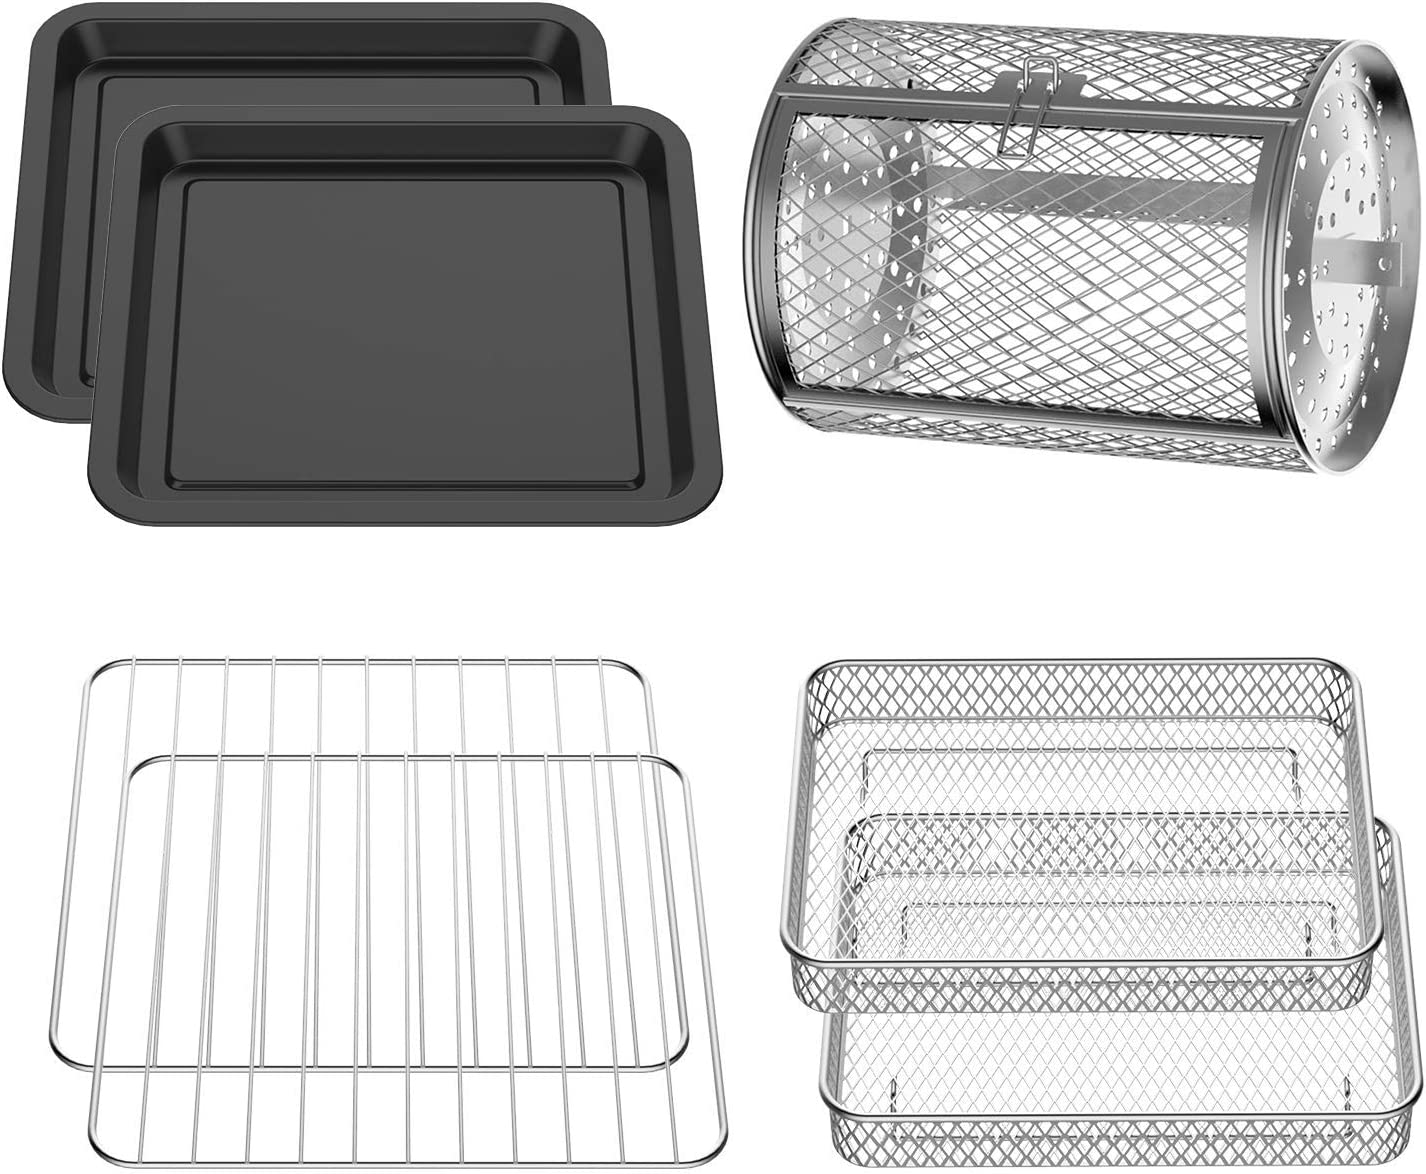 USBLUEWAVE 7-Pieces Air Fryer Oven Accessories Kit for Multi Brands, Rotisseries Drum| Baking Rack| Air Fryer Basket| Baking Tray, Easy Clean, Black&Silver